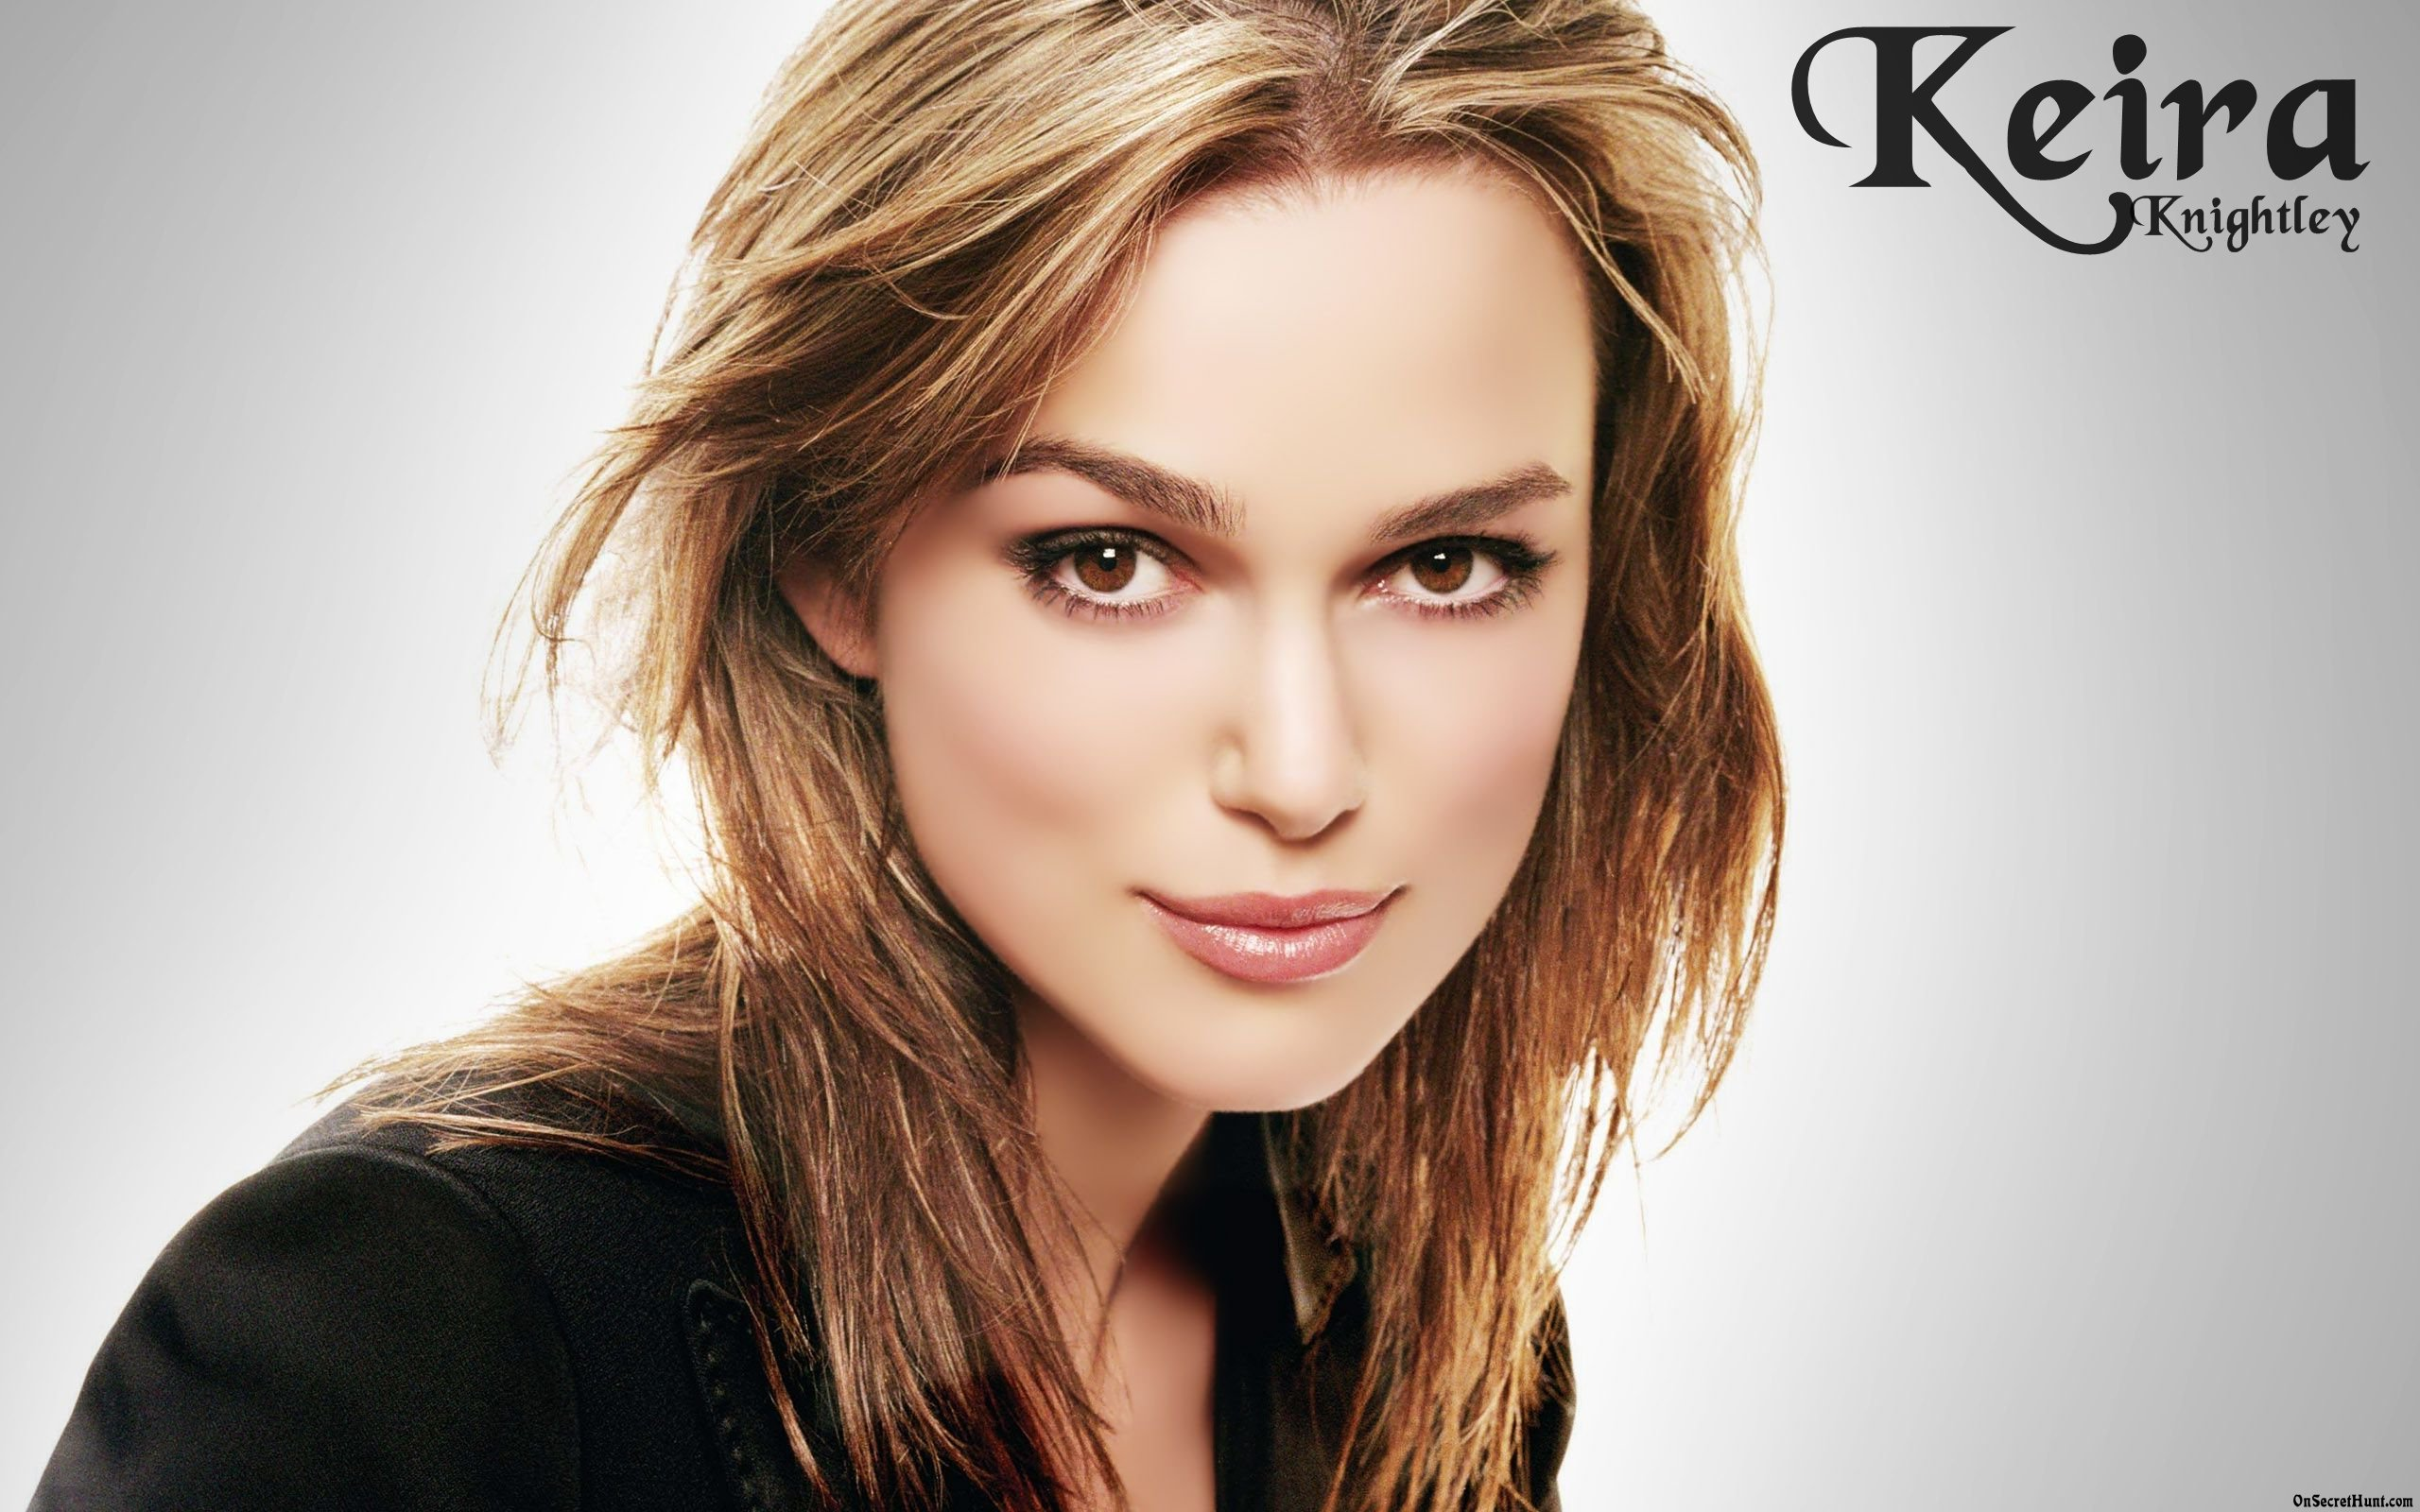 2560x1600 - Keira Knightley Wallpapers 7